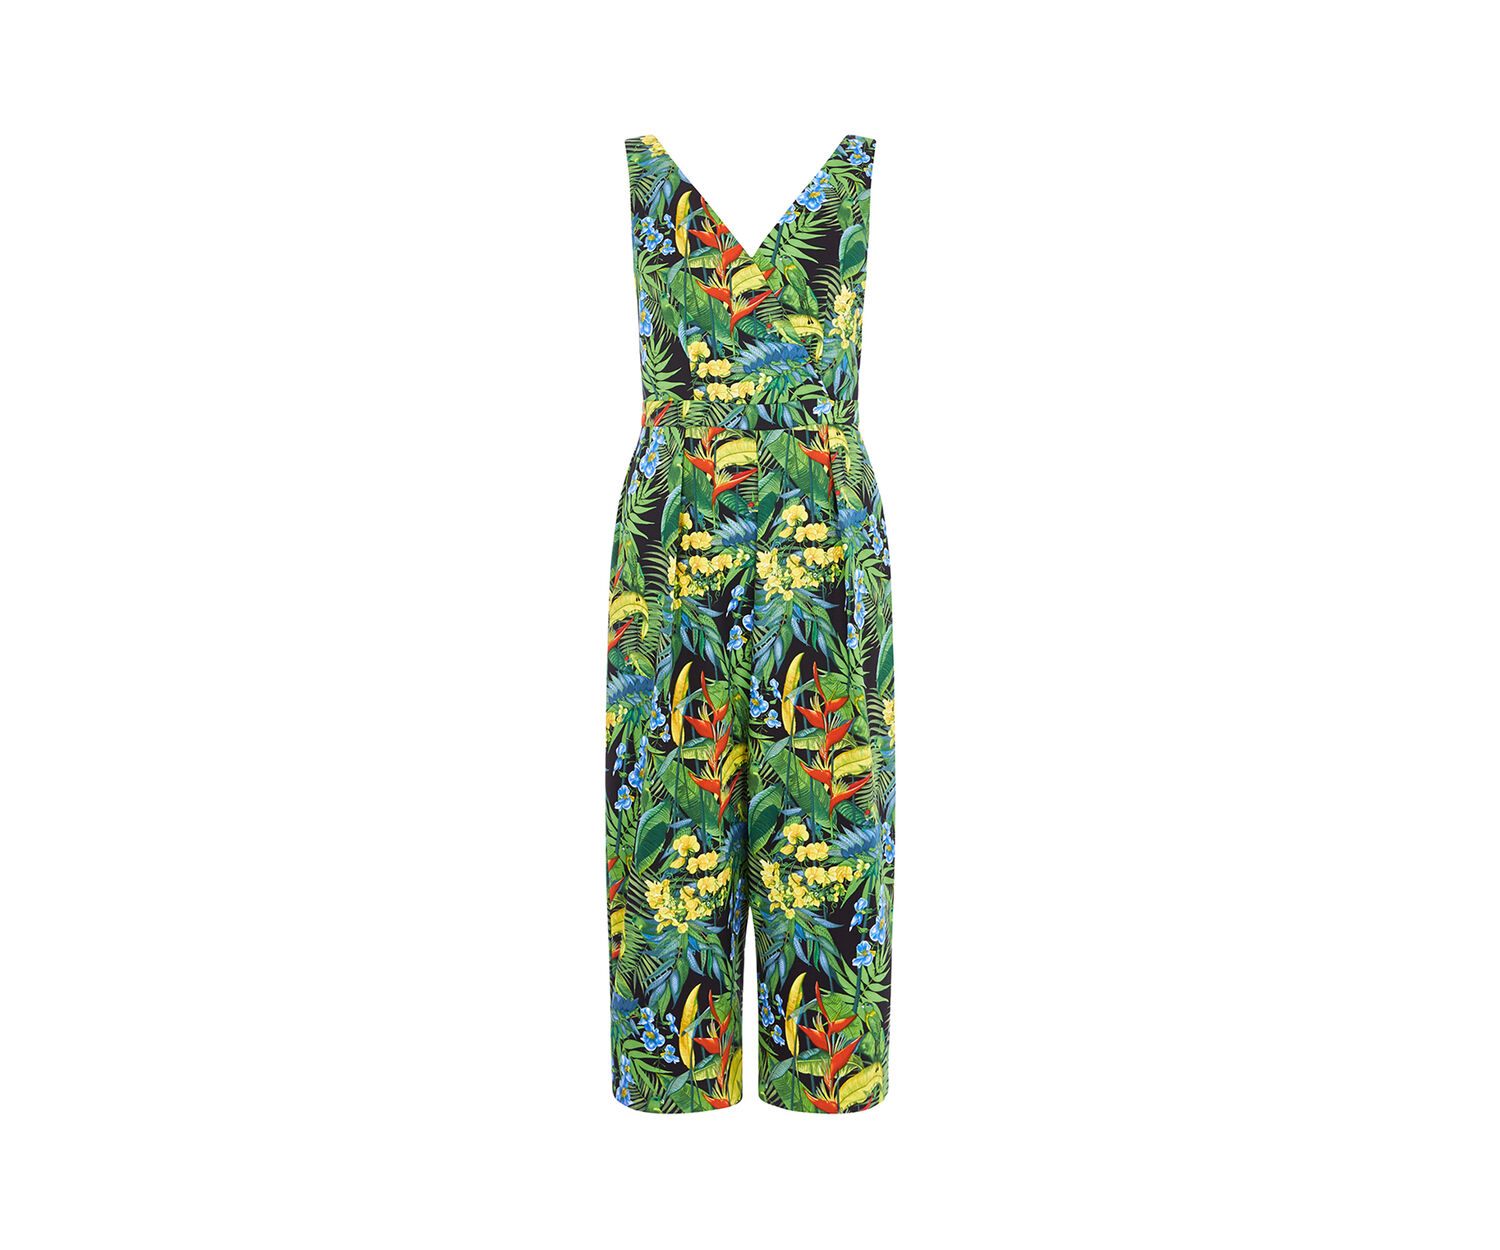 1 2 3 4 5 Previous Next CLICK FOR ZOOM Alternate Views TROPICAL CROP JUMPSUIT  Oasis, TROPICAL CROP JUMPSUIT Multi 1 Oasis, TROPICAL CROP JUMPSUIT Multi 2 Oasis, TROPICAL CROP JUMPSUIT Multi 3 Oasis, TROPICAL CROP JUMPSUIT Multi 4   TROPICAL CROP JUMPSUIT